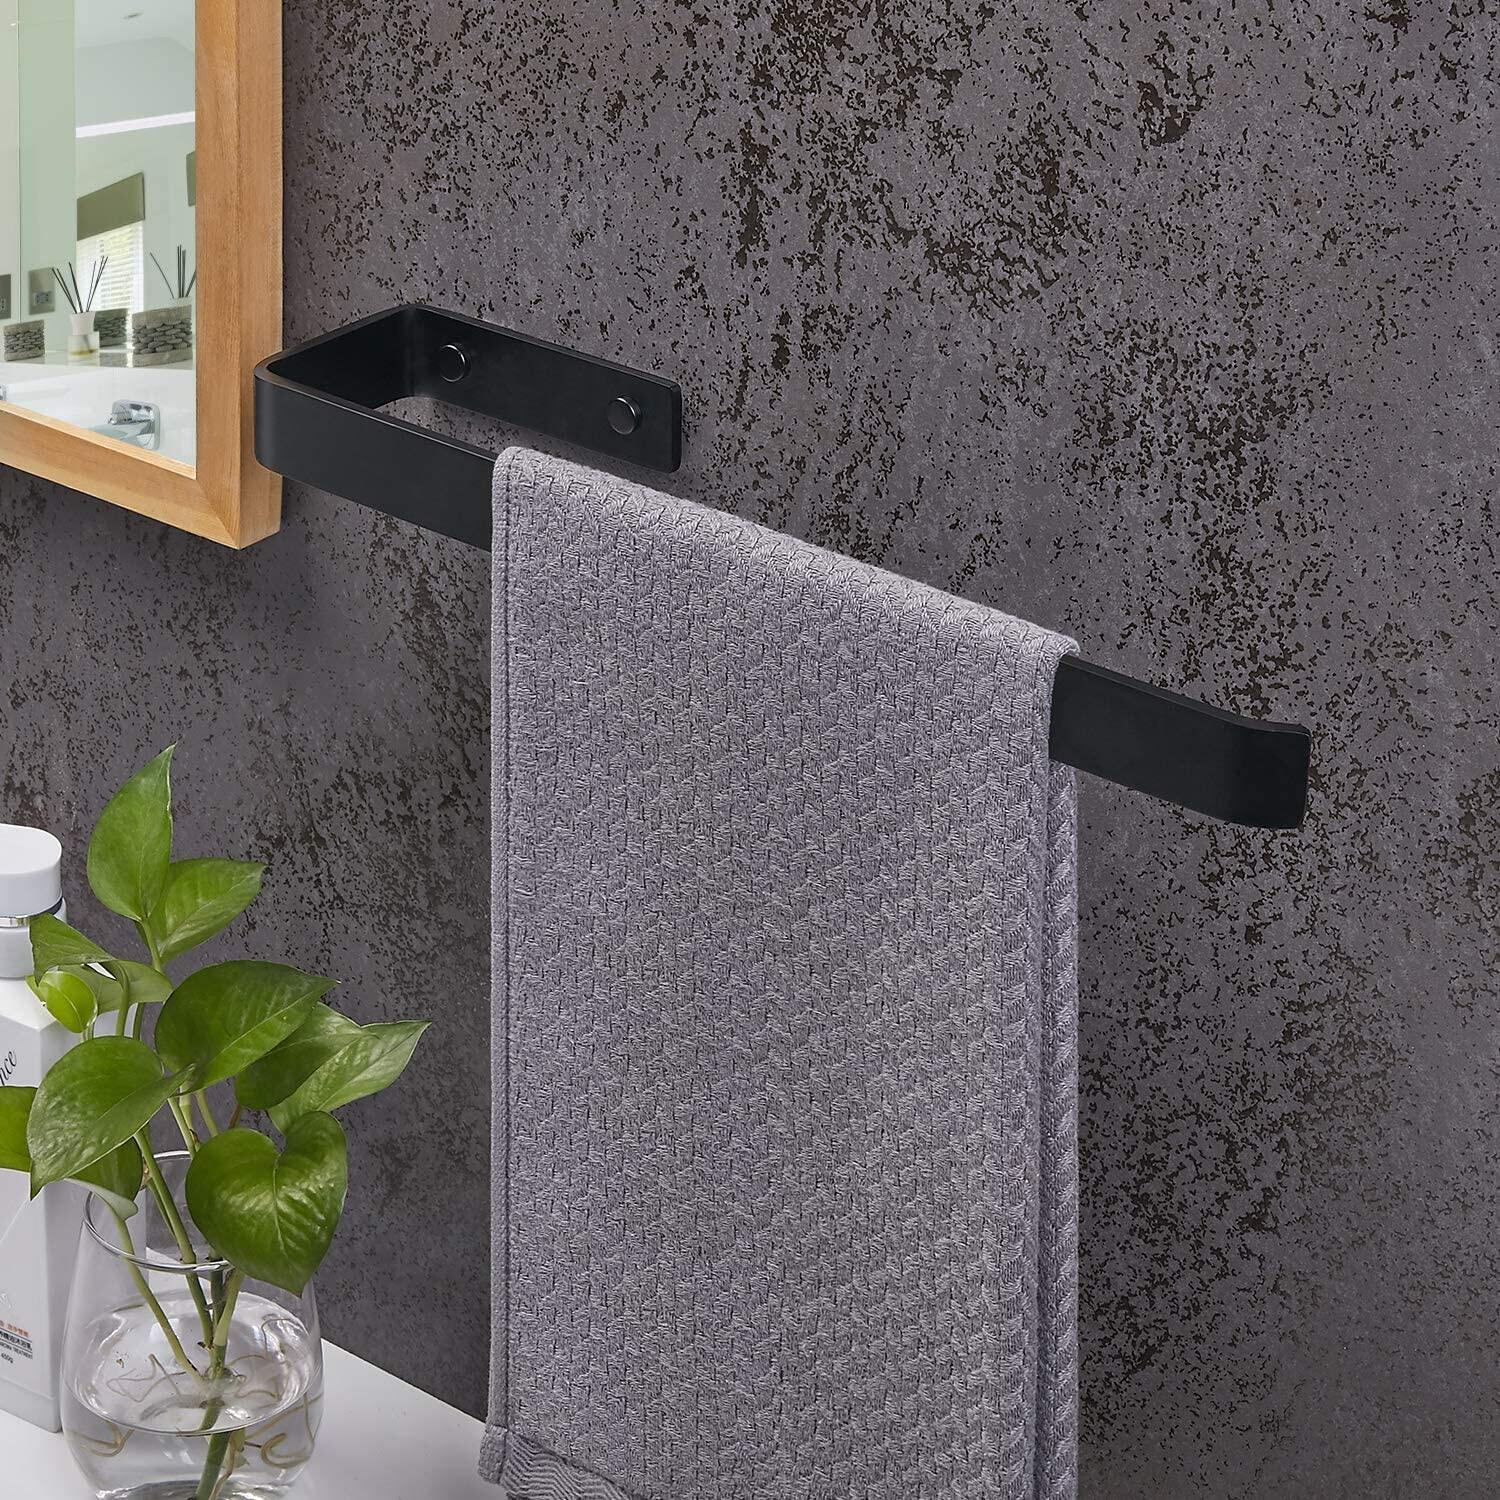 Towel Holder, bathroom black towel rail brushed stainless steel Wall mounting and cabinet mounting for bathroom, bathroom and kitchen, towel holder kitchen 38 cmTowel holder bathroom black towel rail brushed stainless steel Wall mounting and cabinet mounting for bathroom, bathroom and kitchen, towel holder kitchen 38 cmTowel Holder